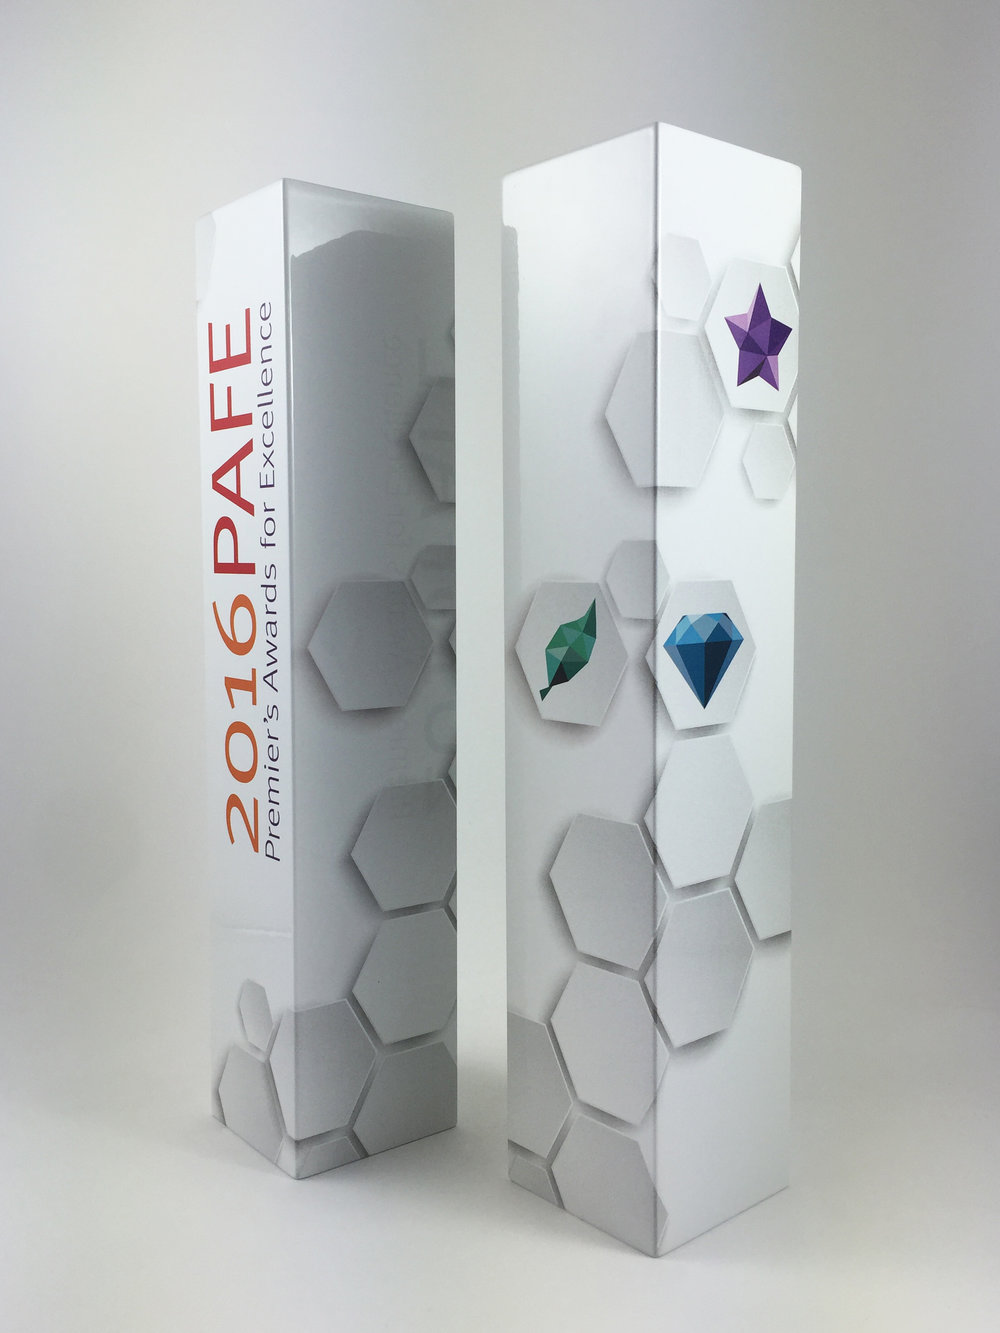 pafe-aluminium-graphic-print-awards-trophy-04.jpg